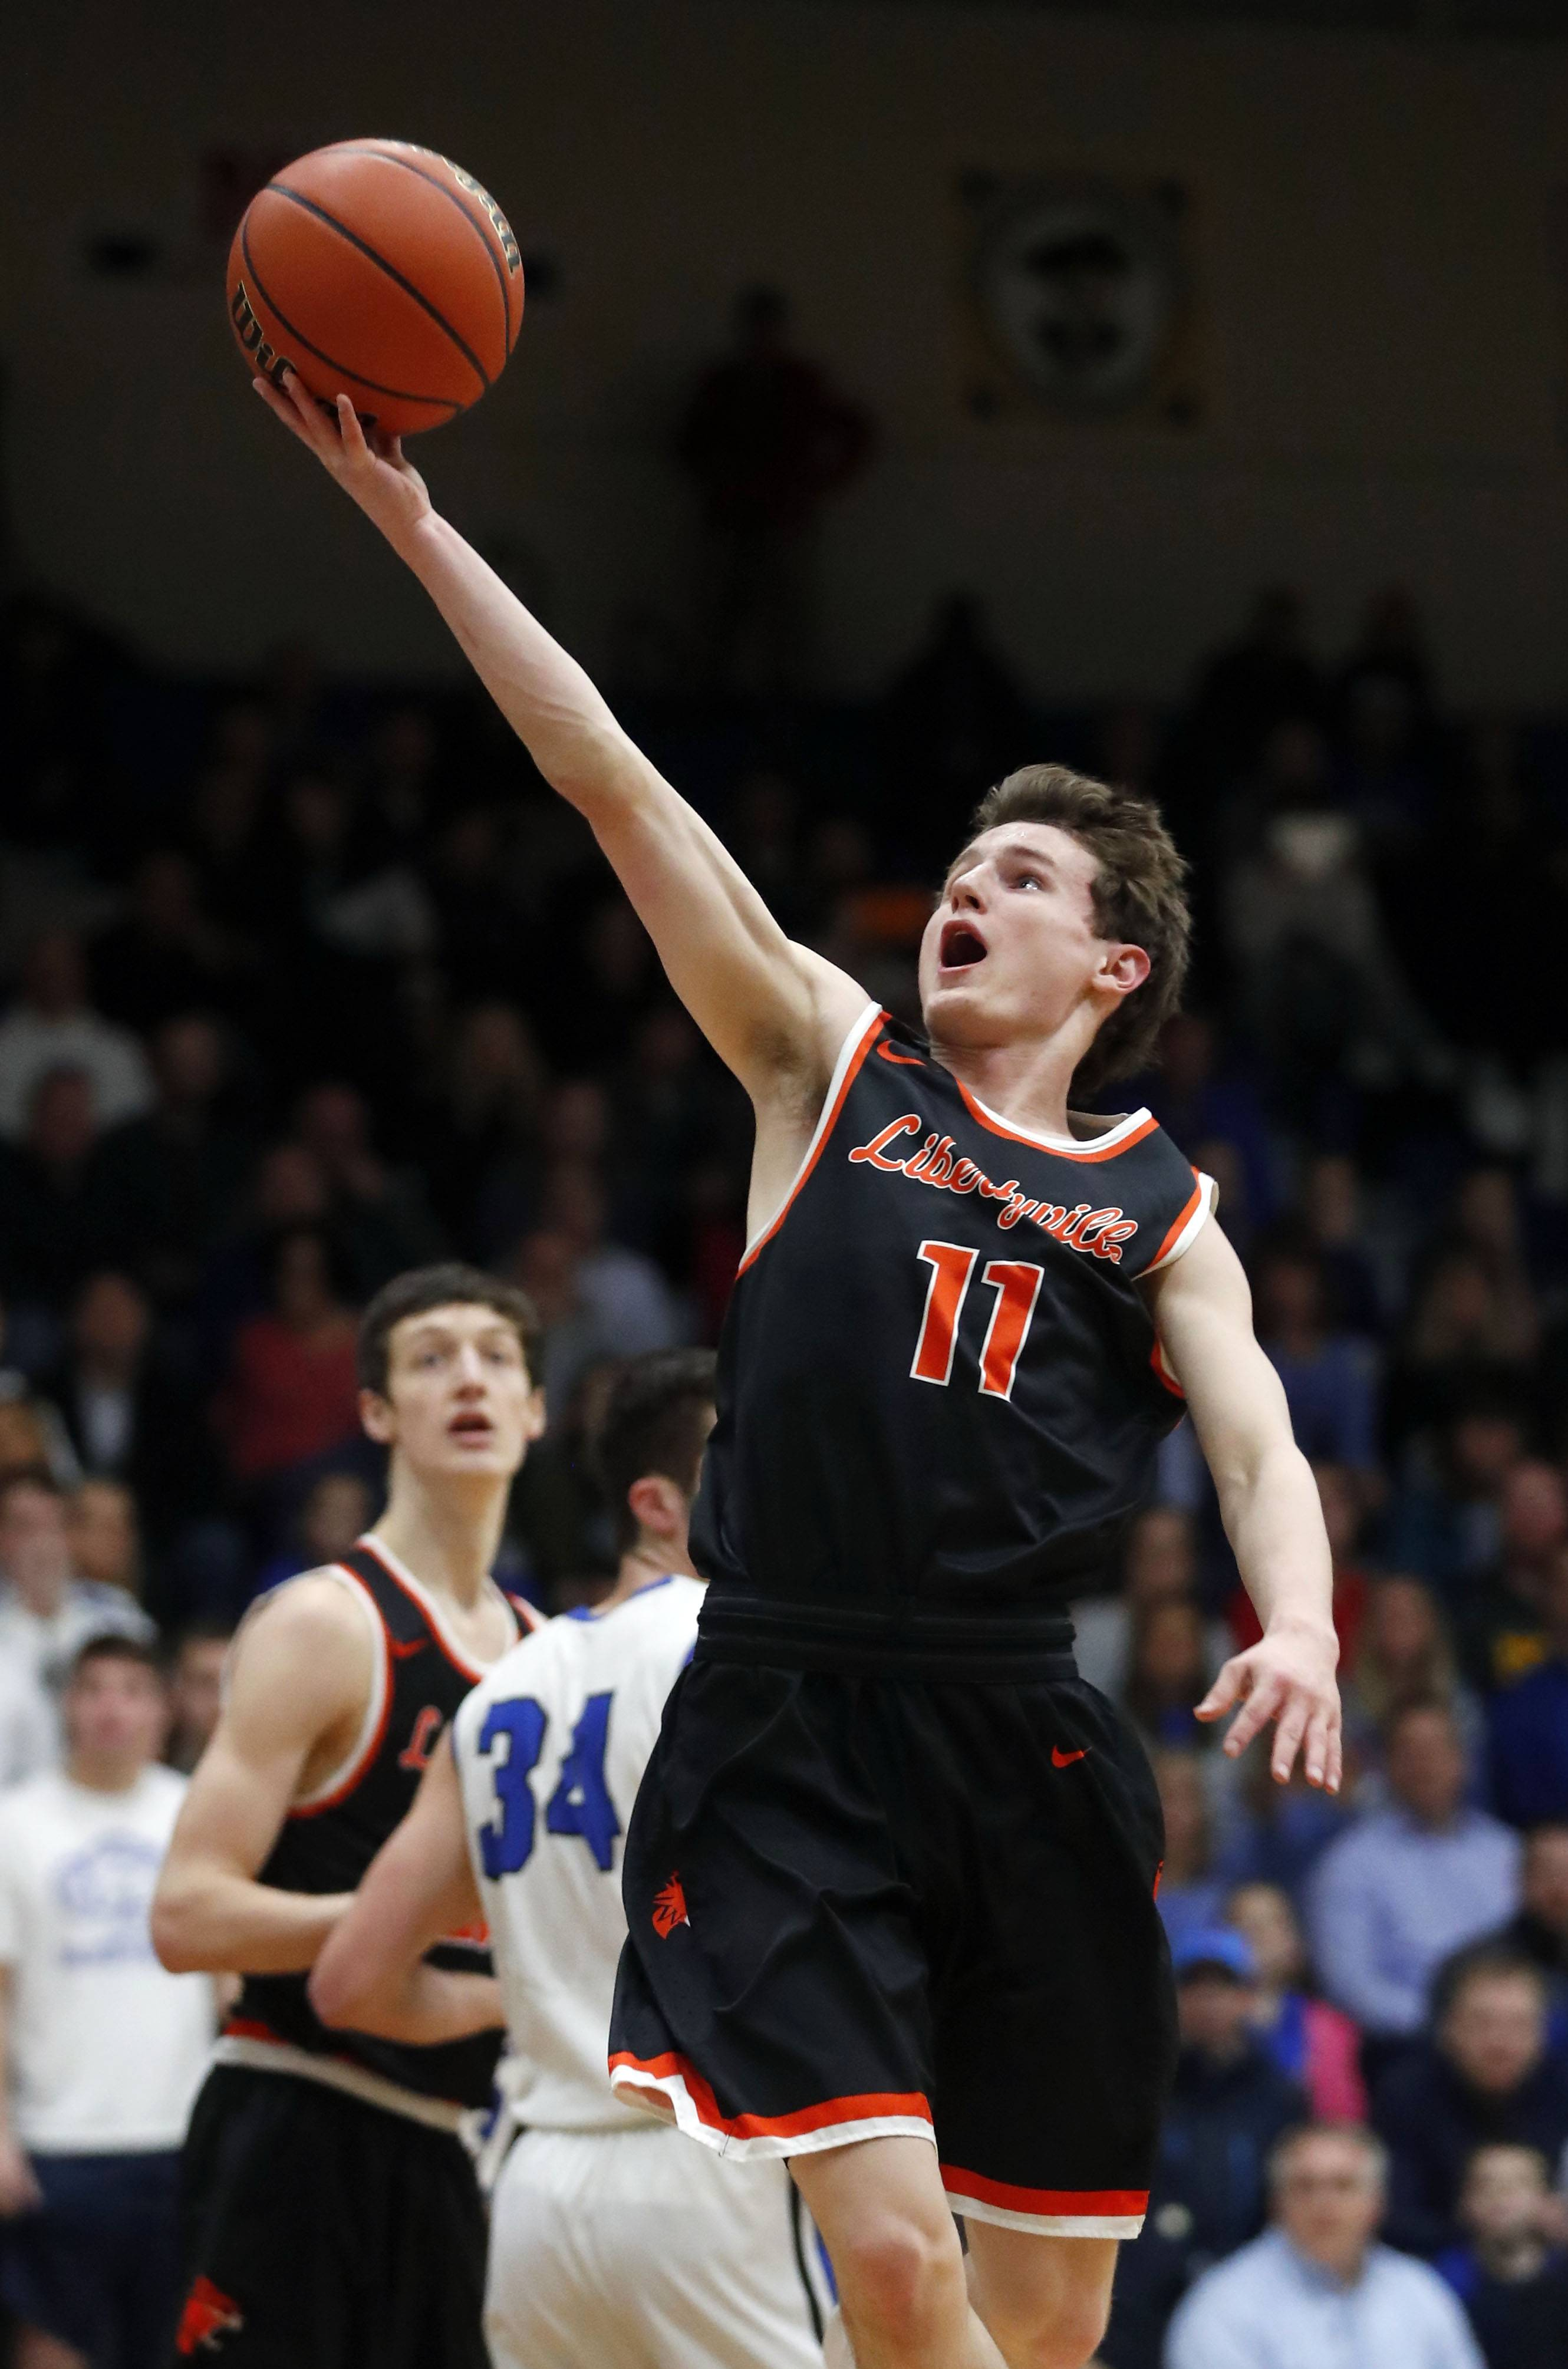 Libertyville's Josh Steinhaus drives for a layup during the Class 4A sectional semifinal at Lake Zurich High School on Tuesday.